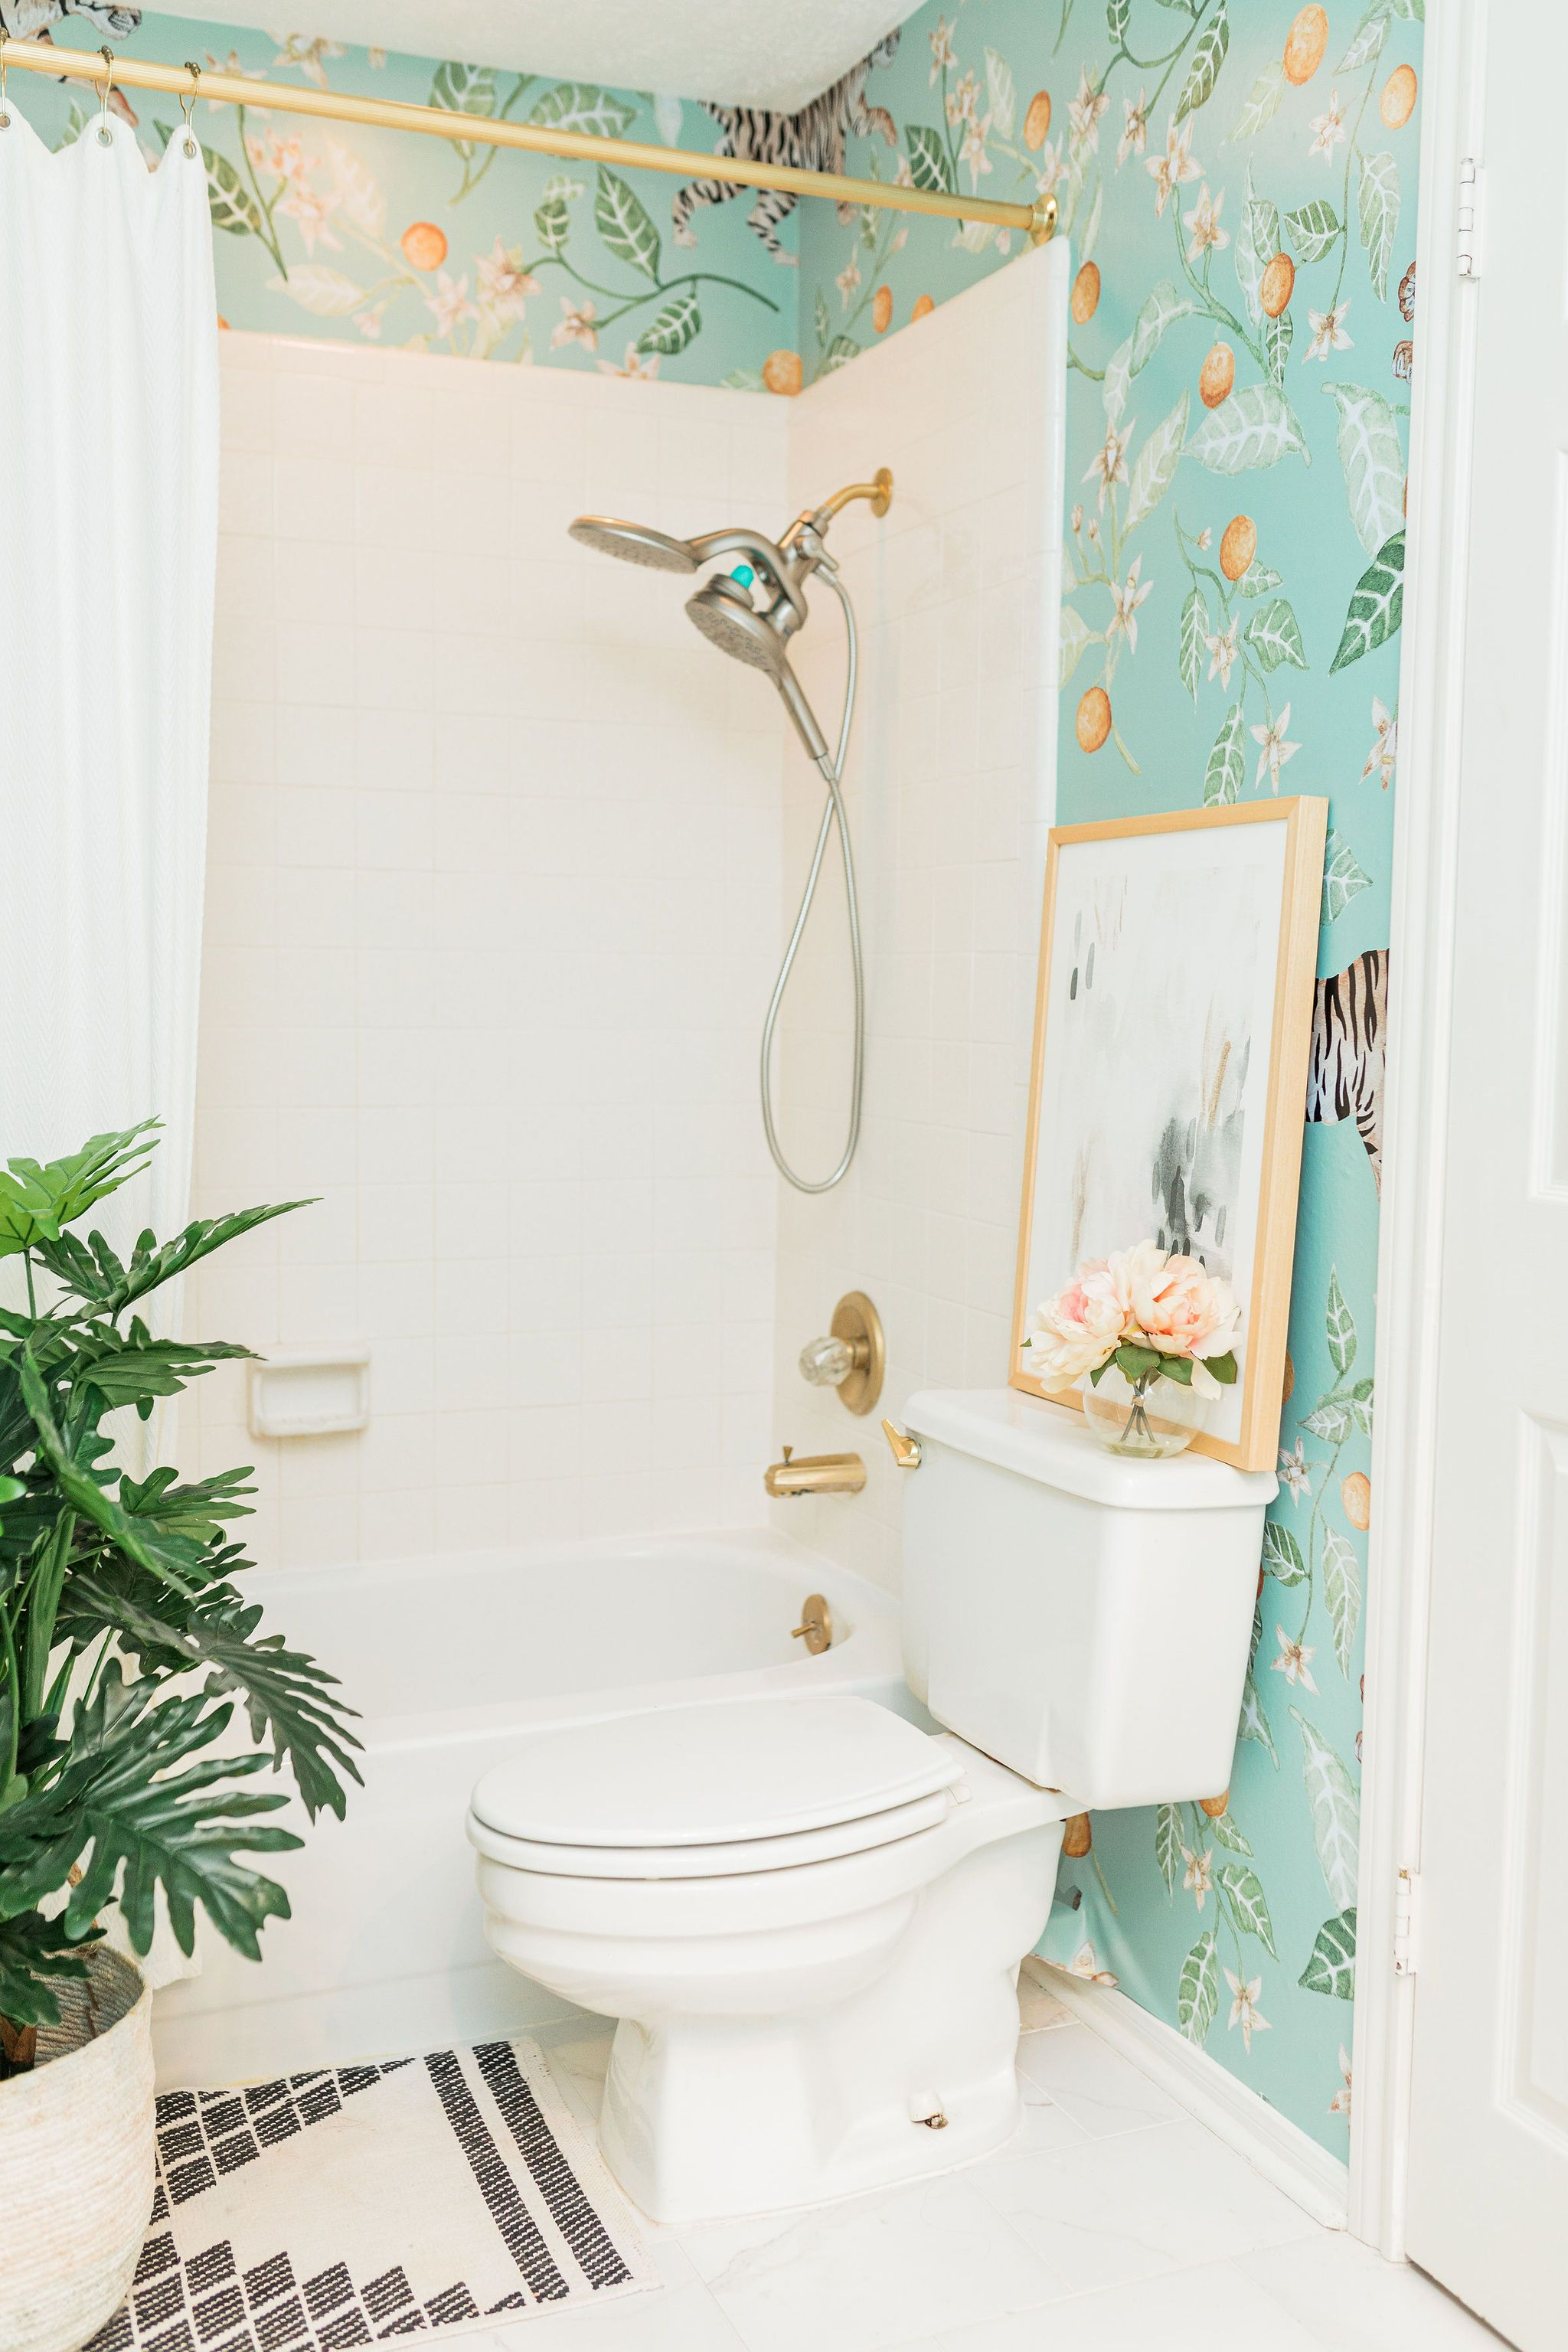 Clementine Mural in 2020 Wallpaper accent wall bathroom